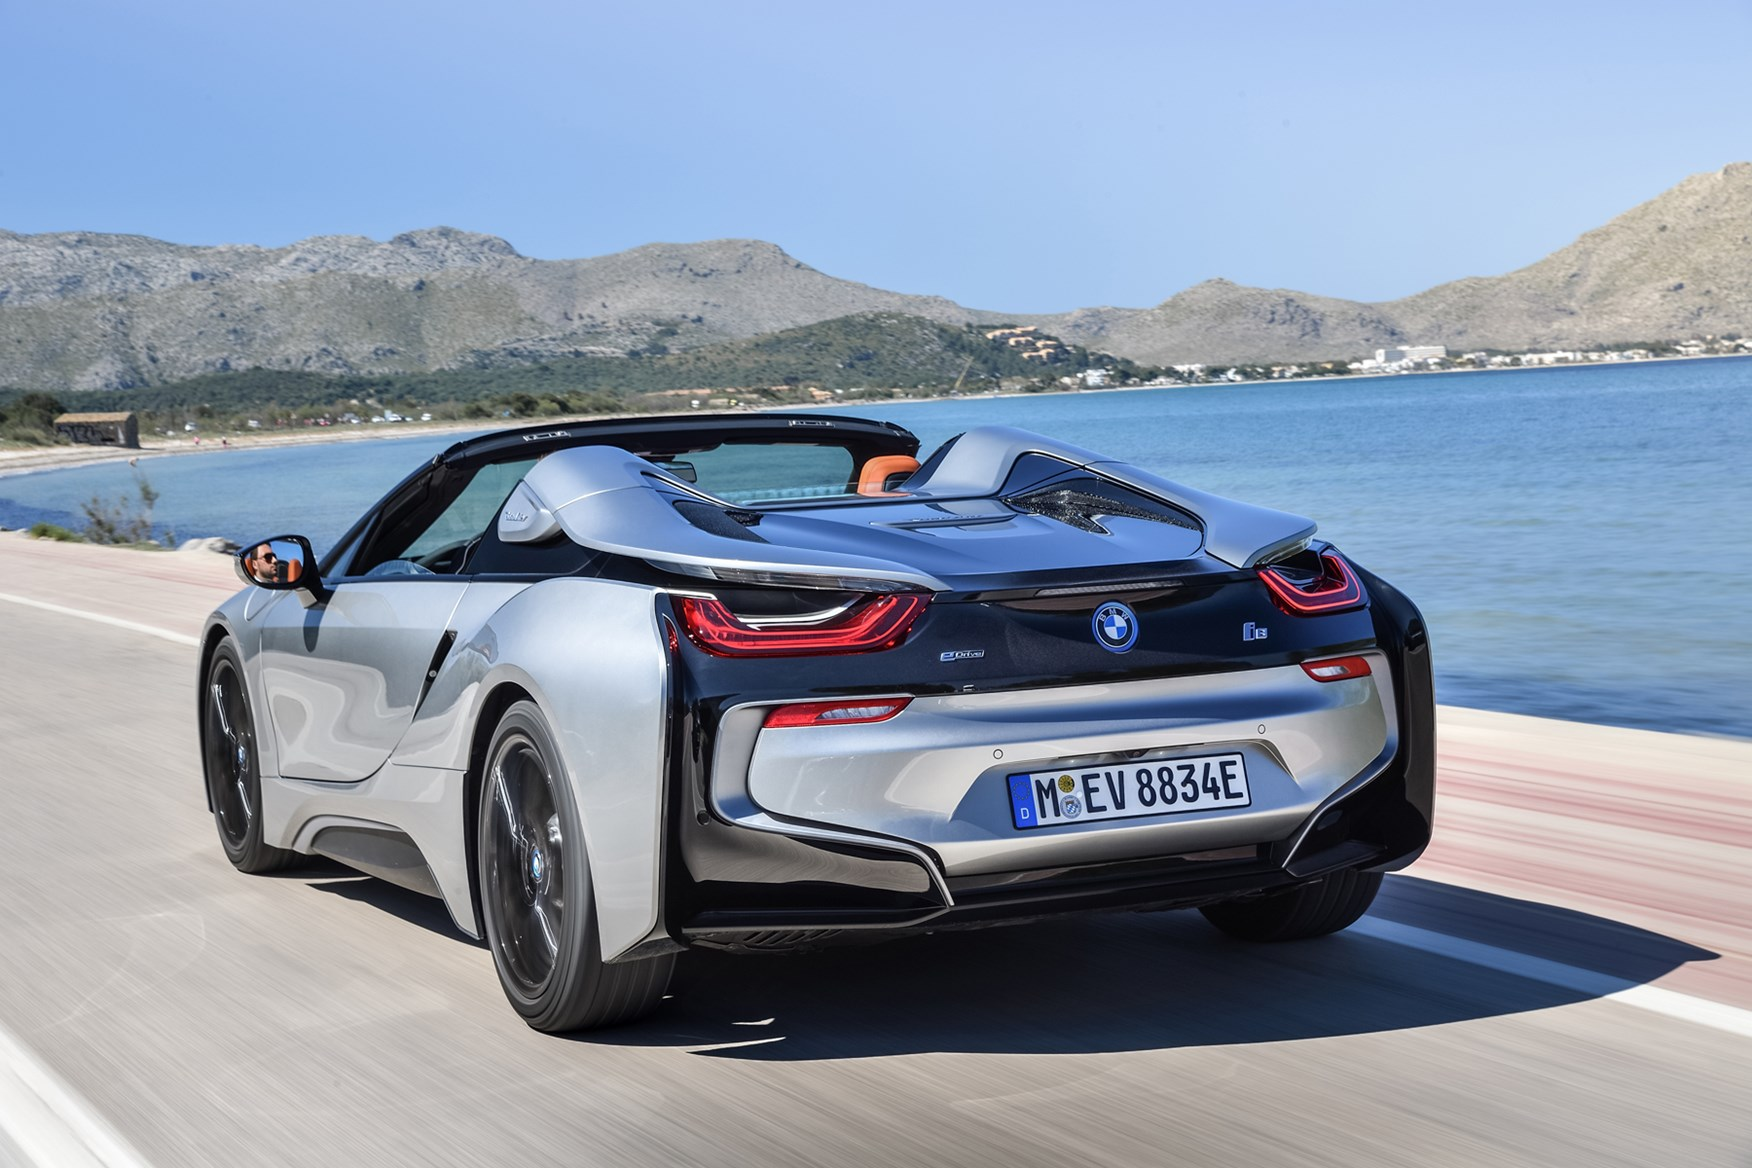 Bmw I8 Roadster Review Features Safety And Practicality Parkers